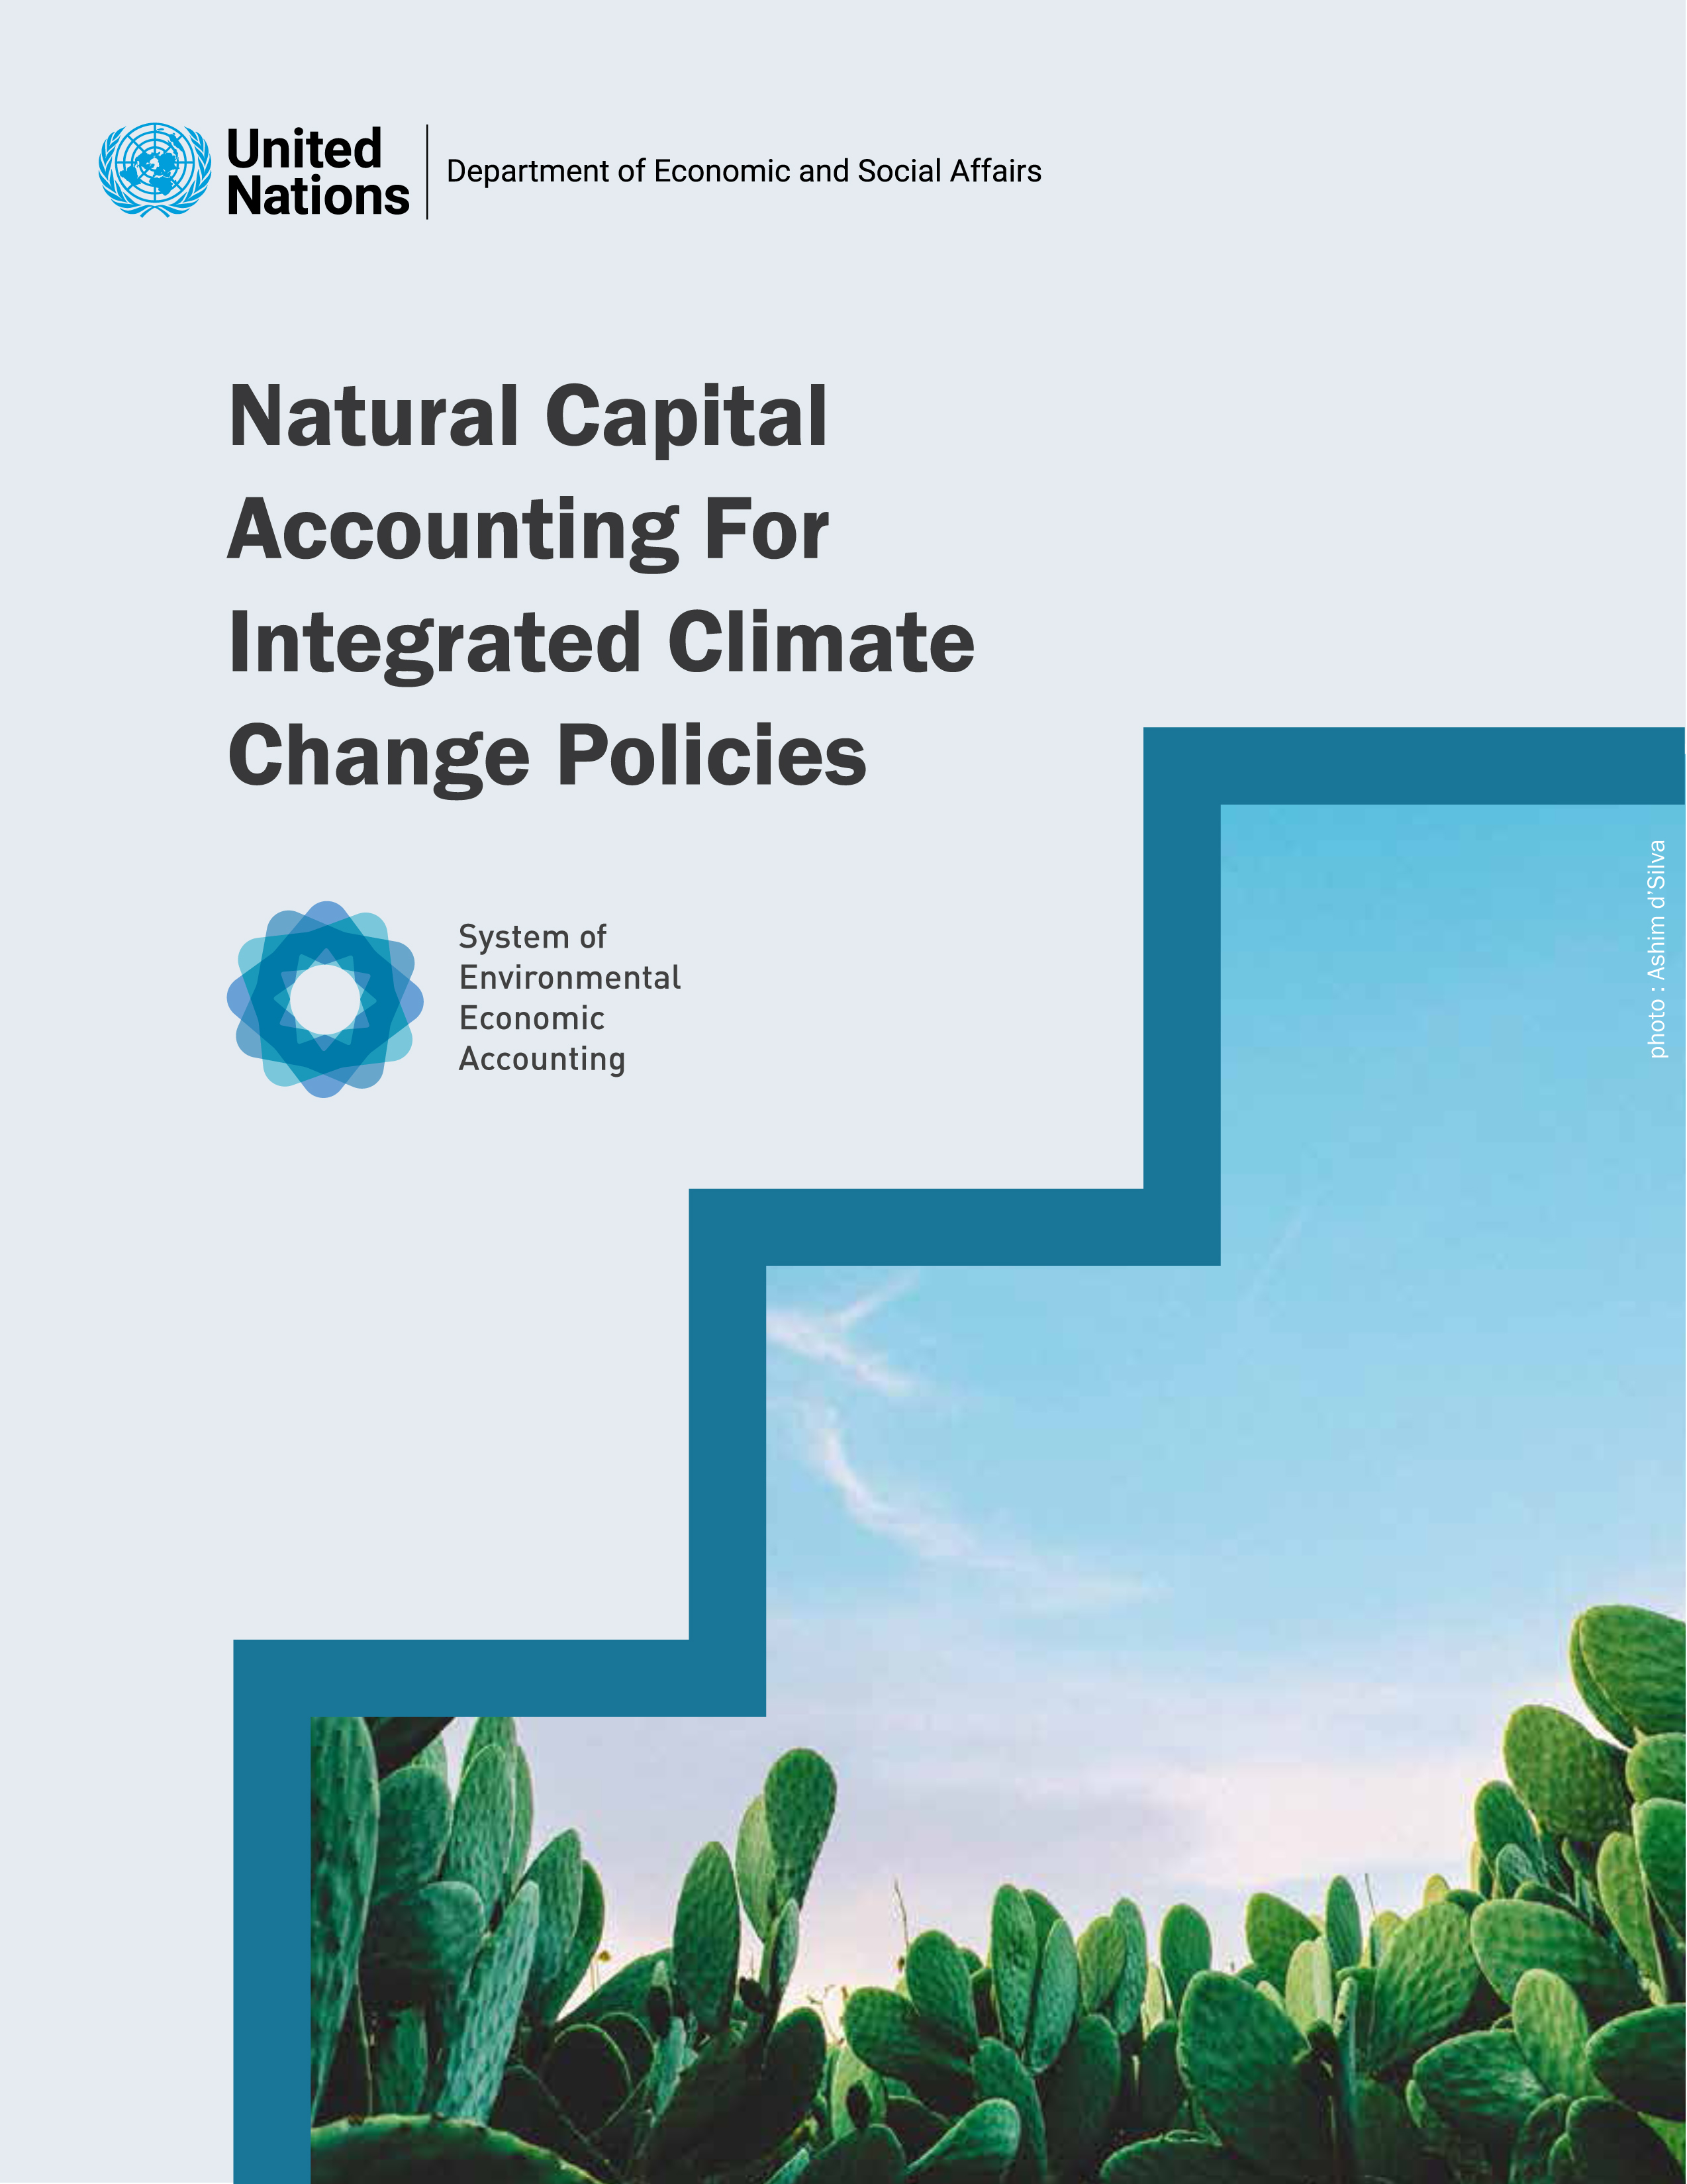 NATURAL CAPITAL ACCOUNT CLIMATE